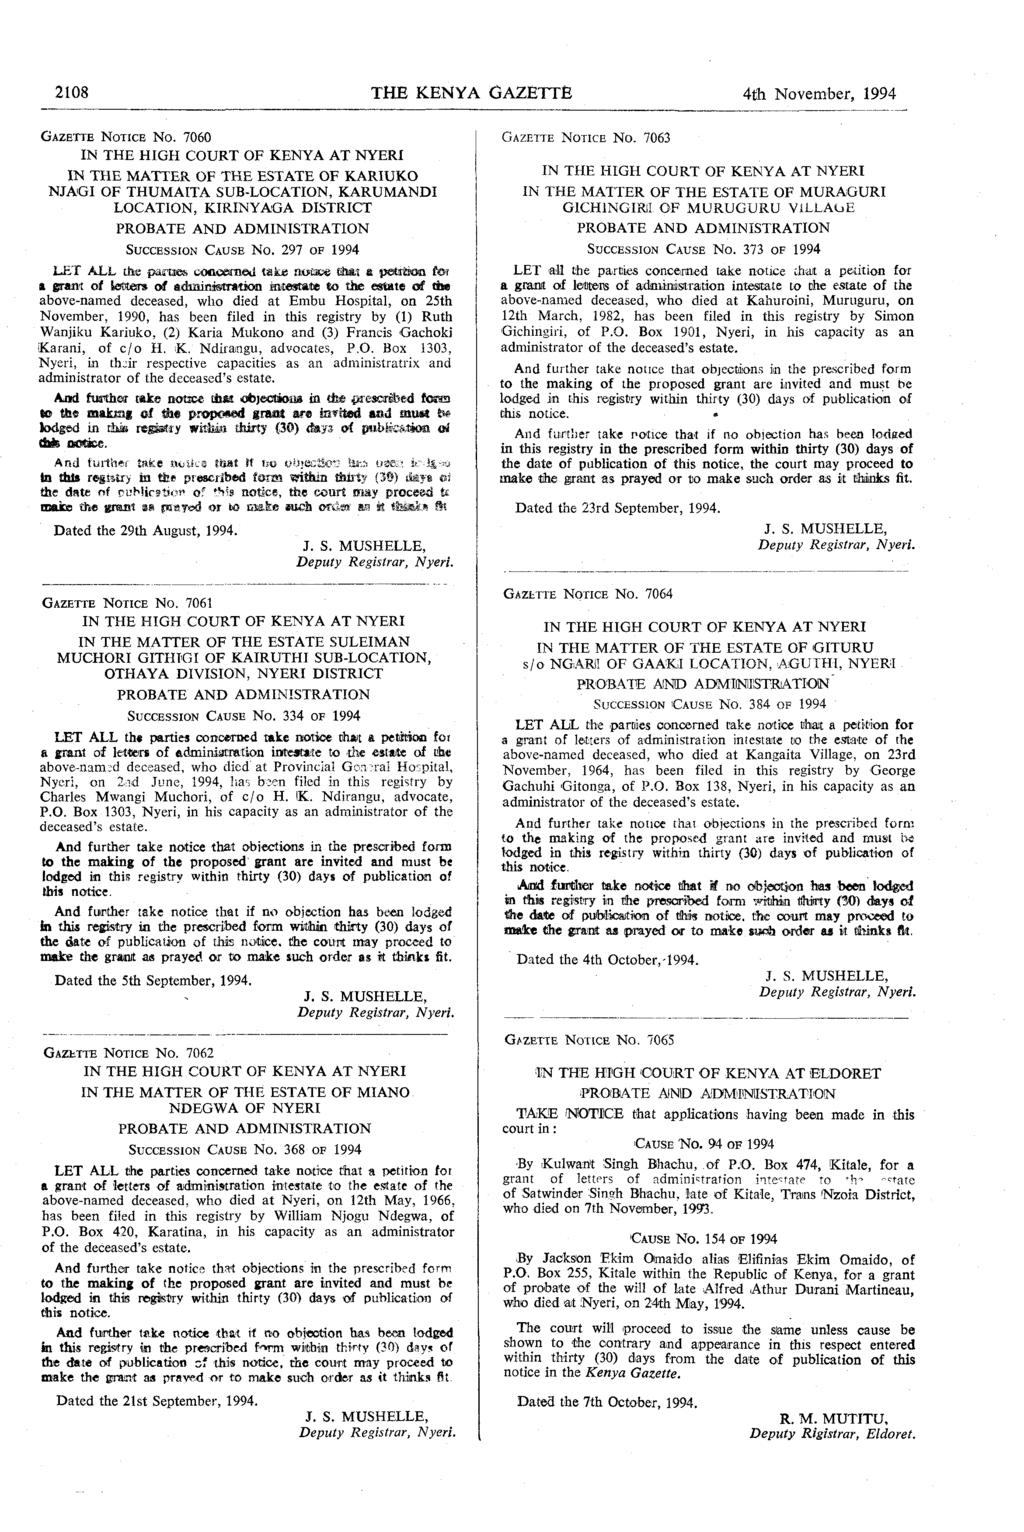 2108 THE KENYA GAZETIY 4th November,1994 G AZETTE N OTICB NO7060 GAZBTTB NOTICE N o7063 IN THE HIGH COURT OF KENYA AT NYERI IN THE M ATTER OF THE ESTATE OF KARIUKO IN THE HIGH COURT OF KENYA AT NYERI